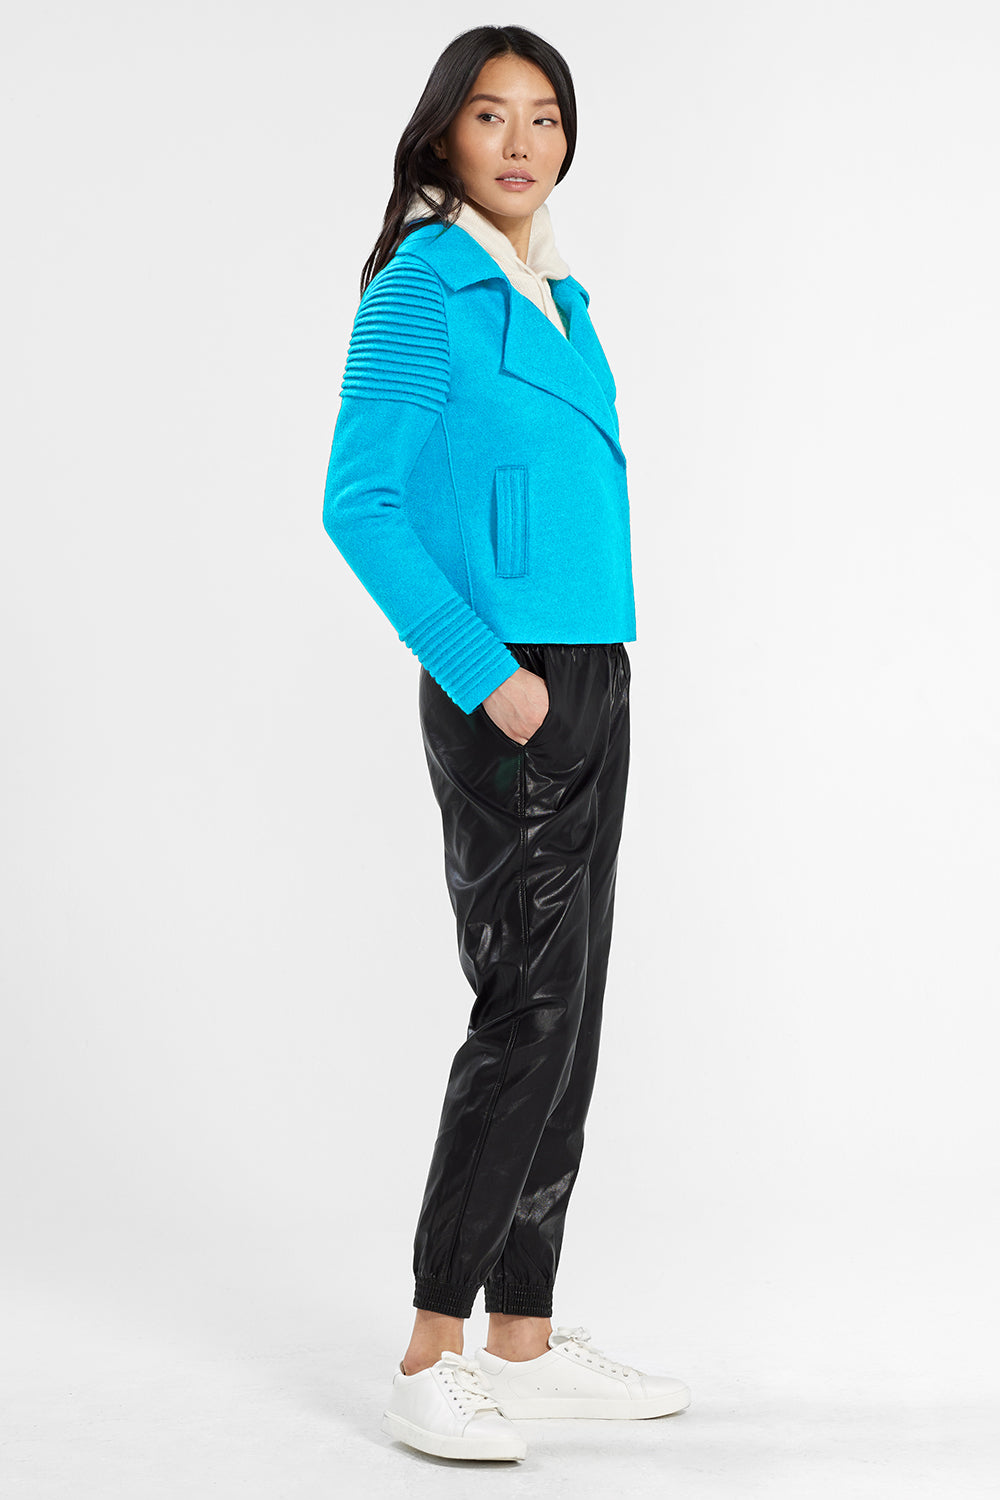 Sentaler Bomber Jacket with Ribbed Shoulders and Cuffs featured in Superfine Alpaca and available in AI Aqua. Seen from side.